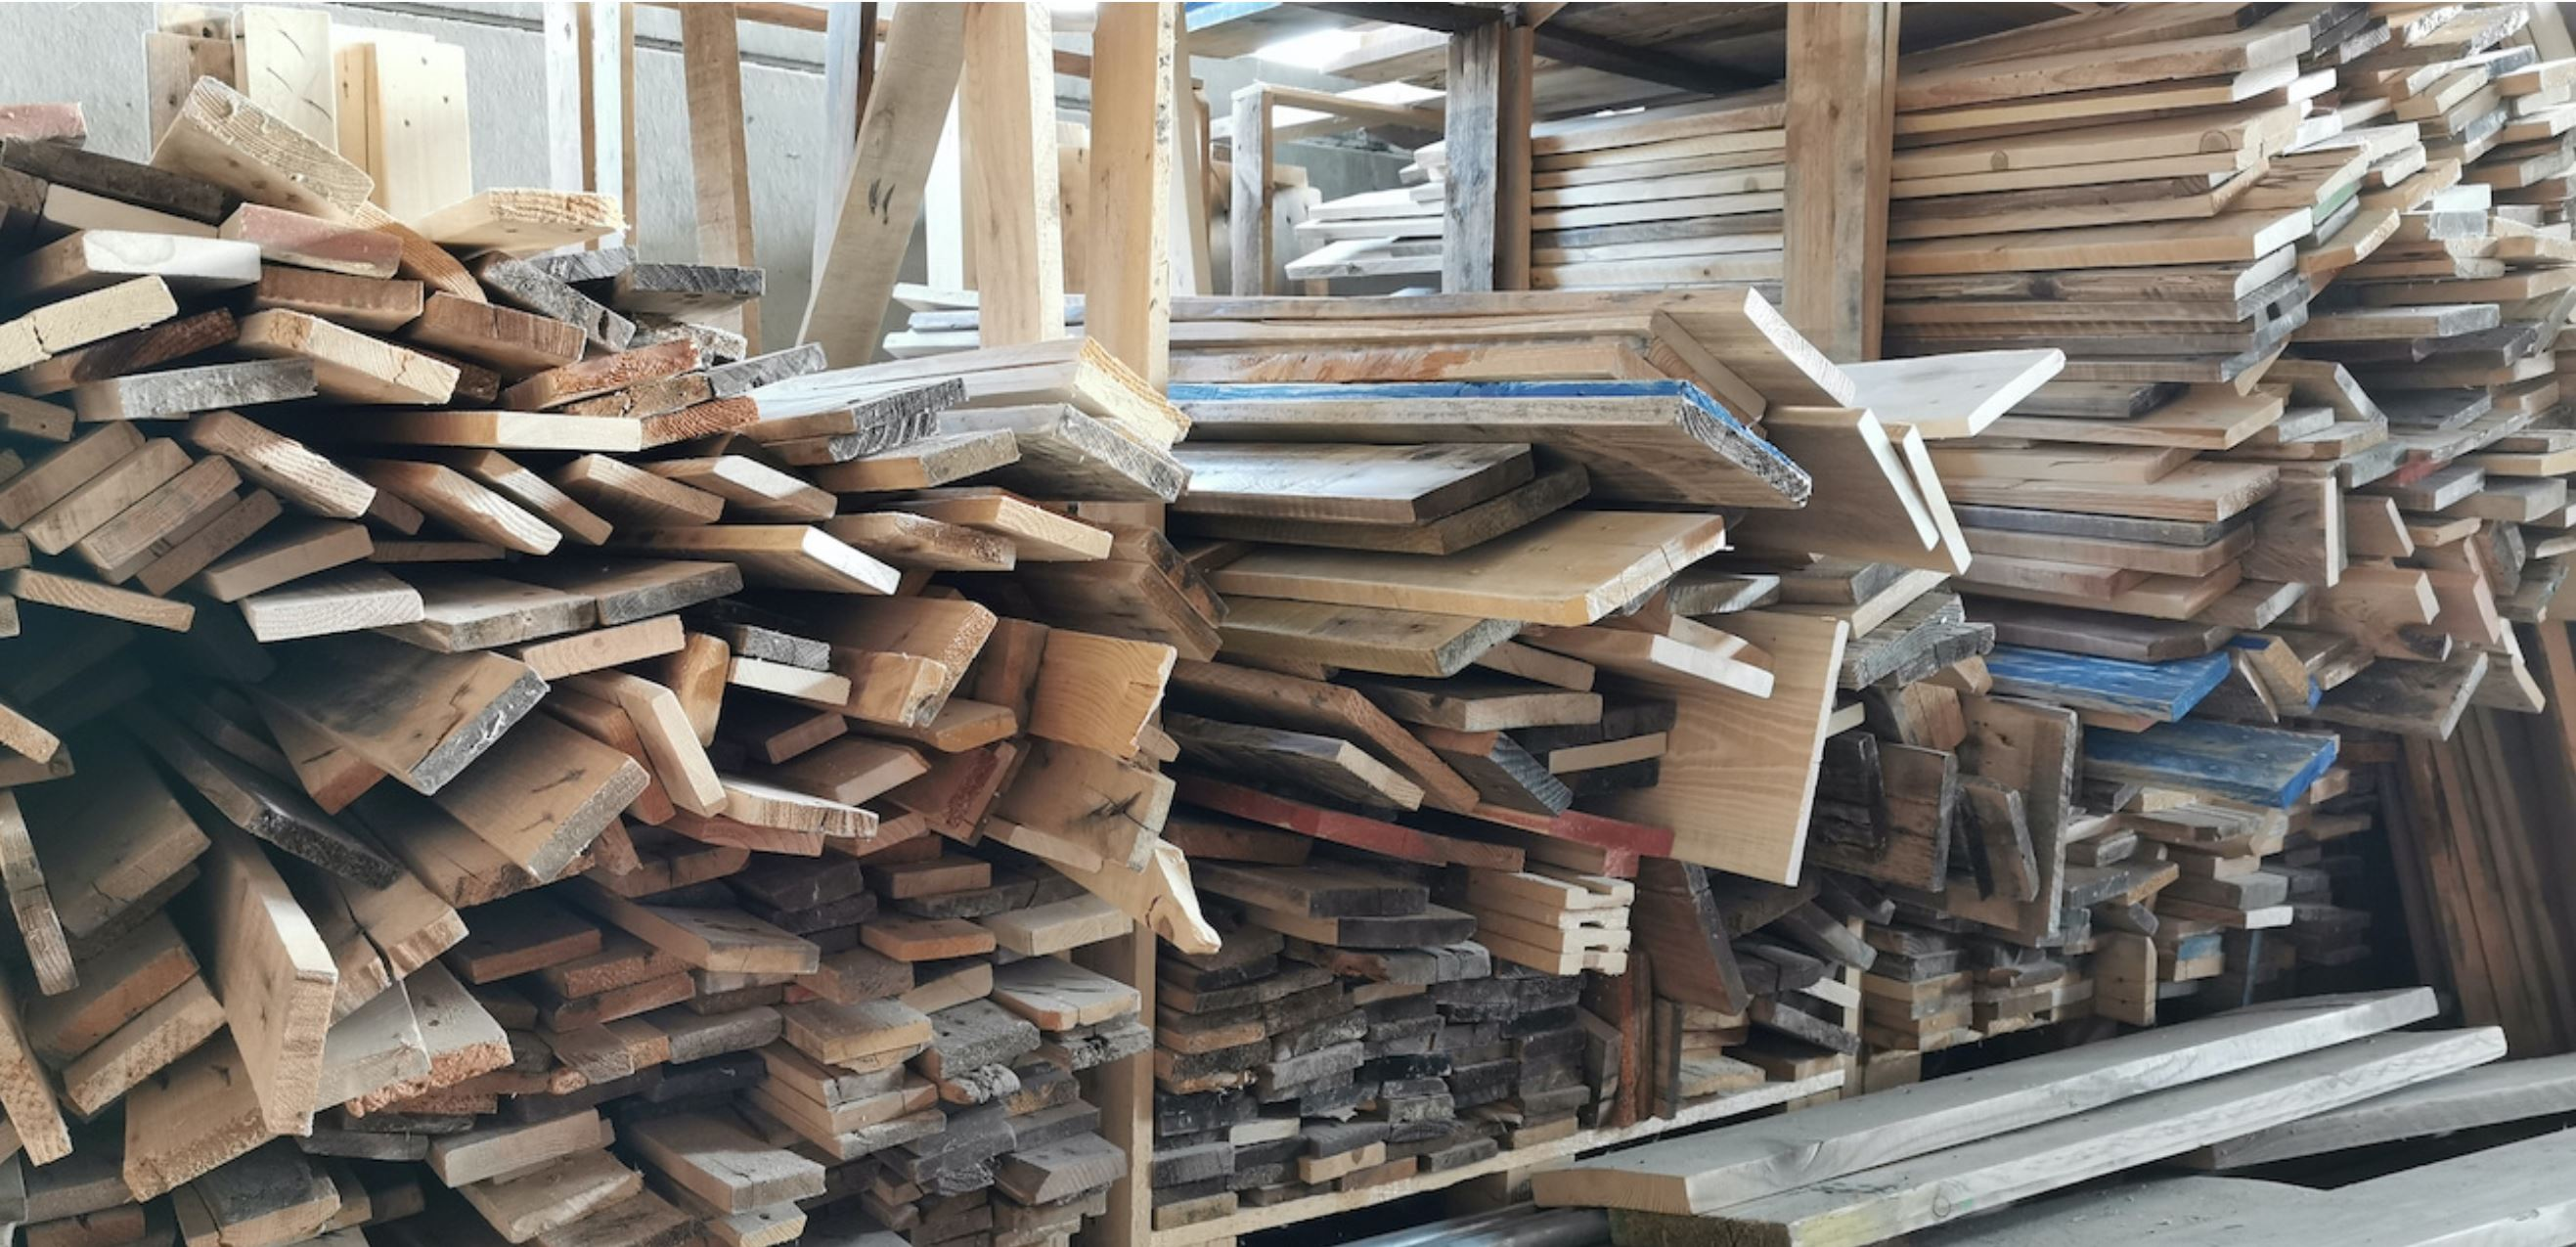 Realtor Magazine 2021 06 16 Lumber Prices are Dropping Fast from record highs after going through the China COVID-19 Coronavirus plandemic Hoey Team exp Realty